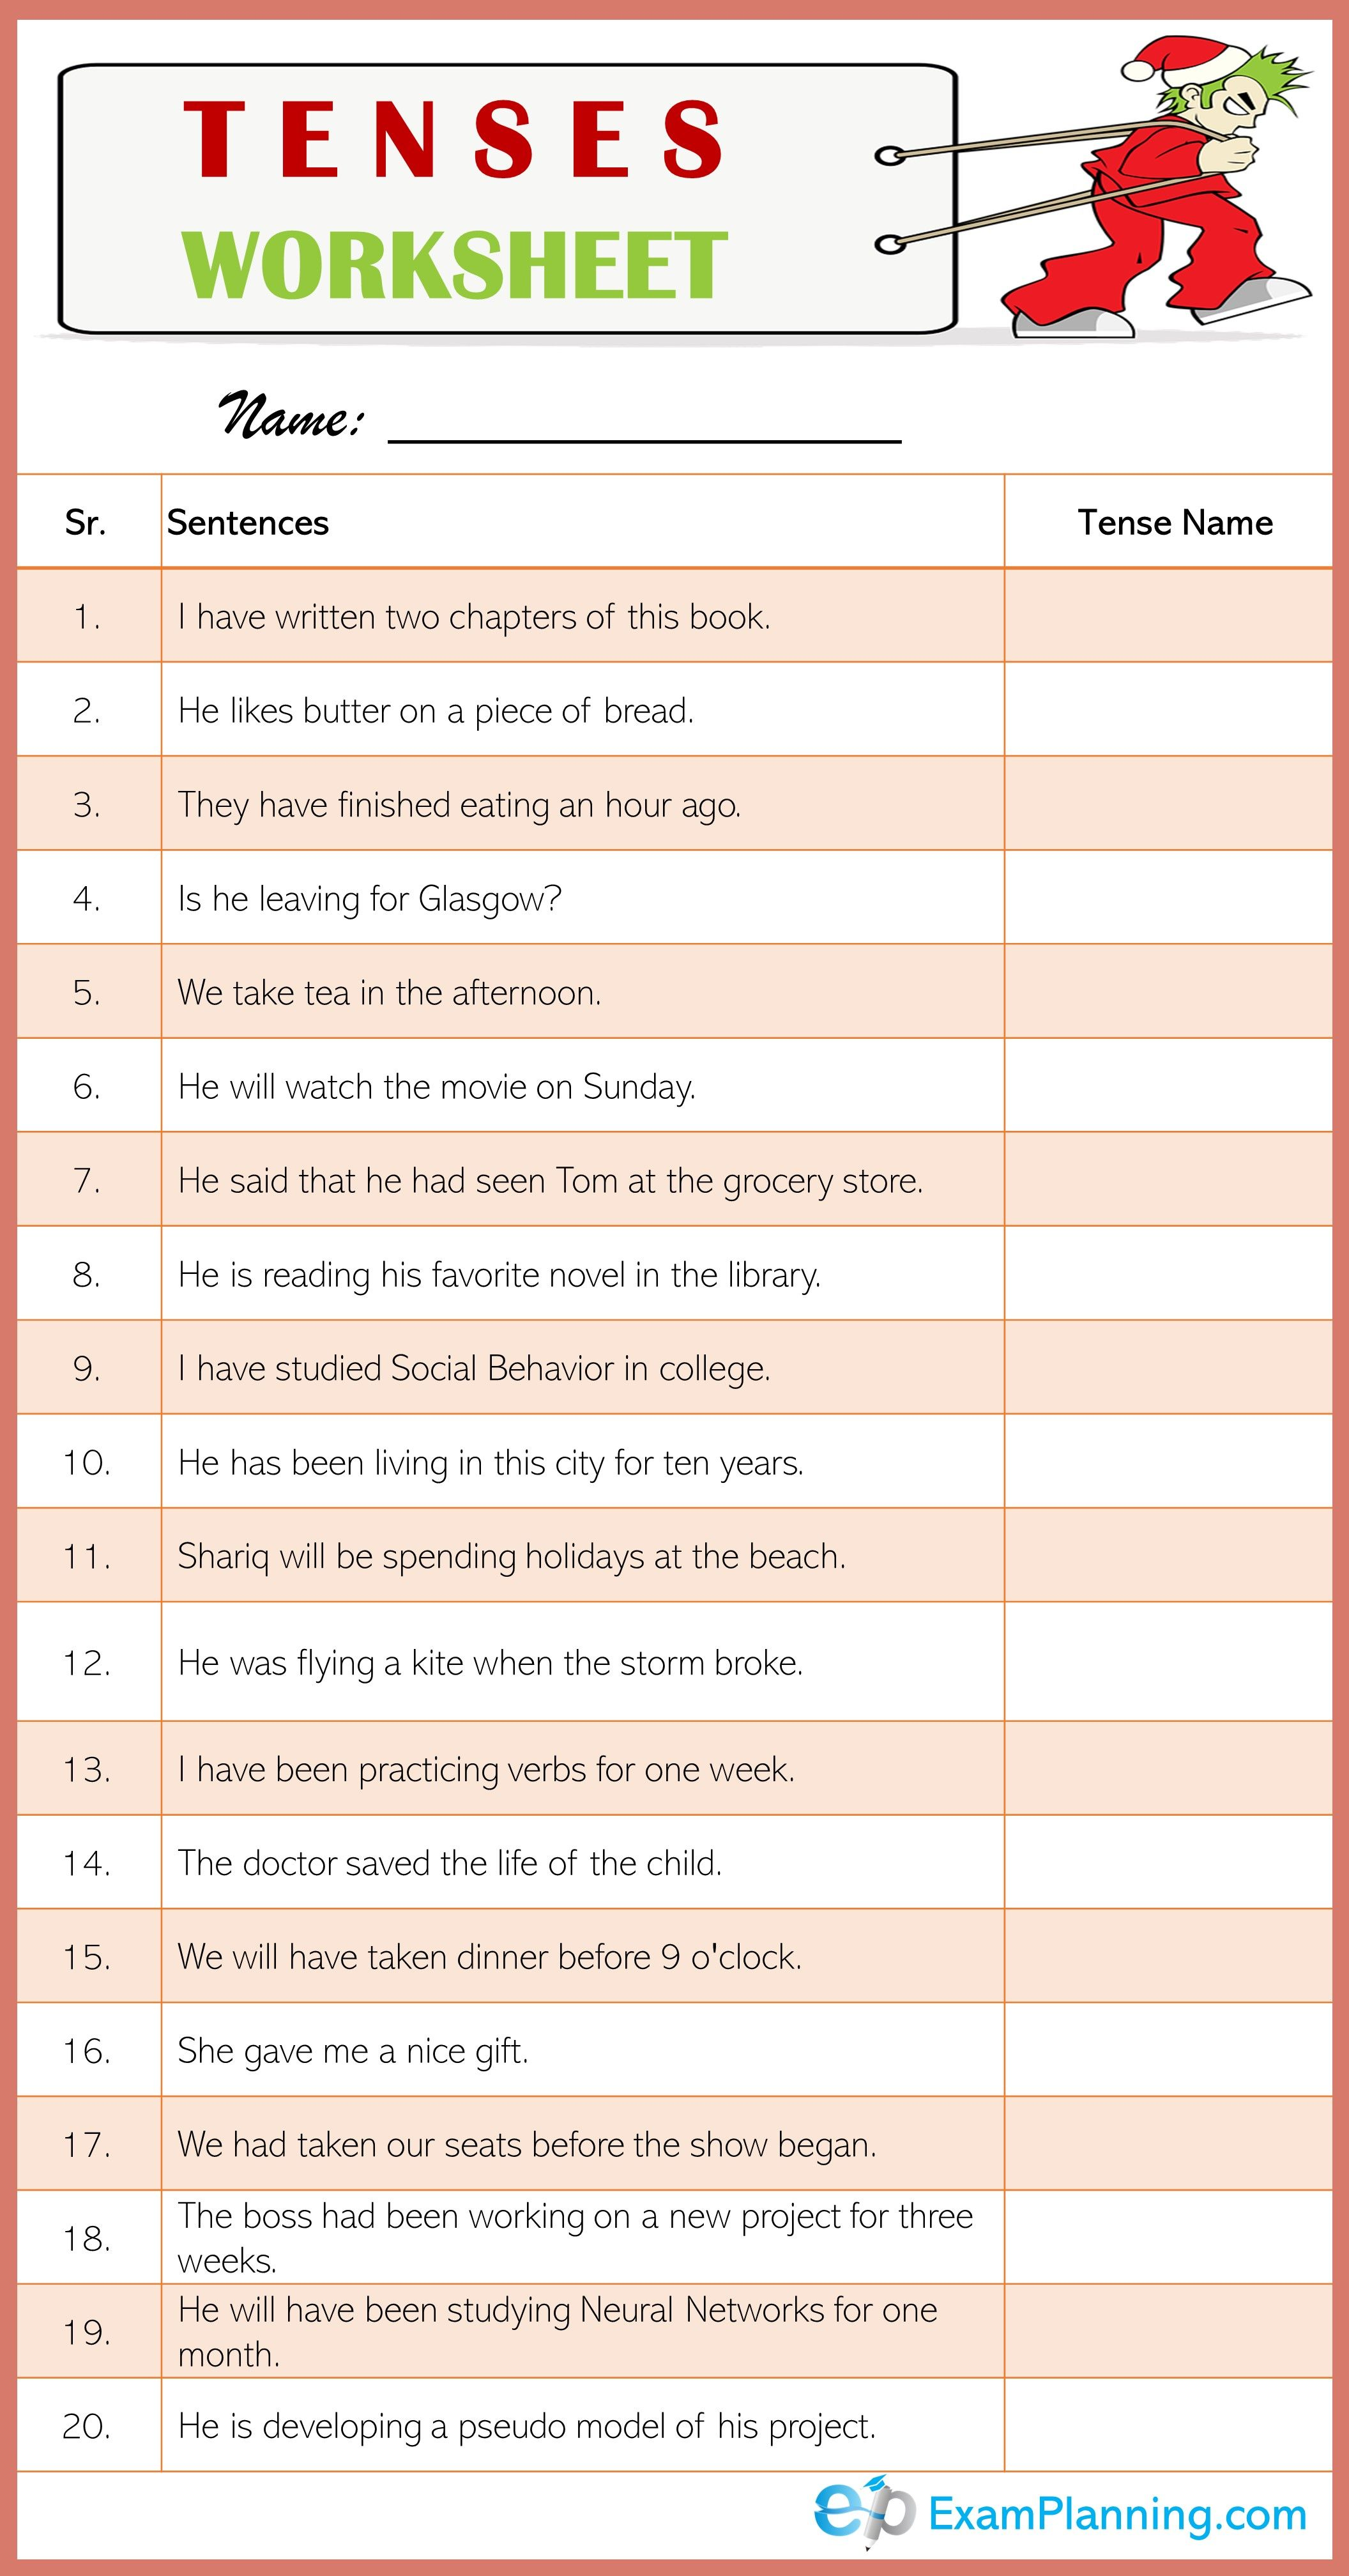 Tenses Worksheet 20 Sentences Of Mixed Tenses